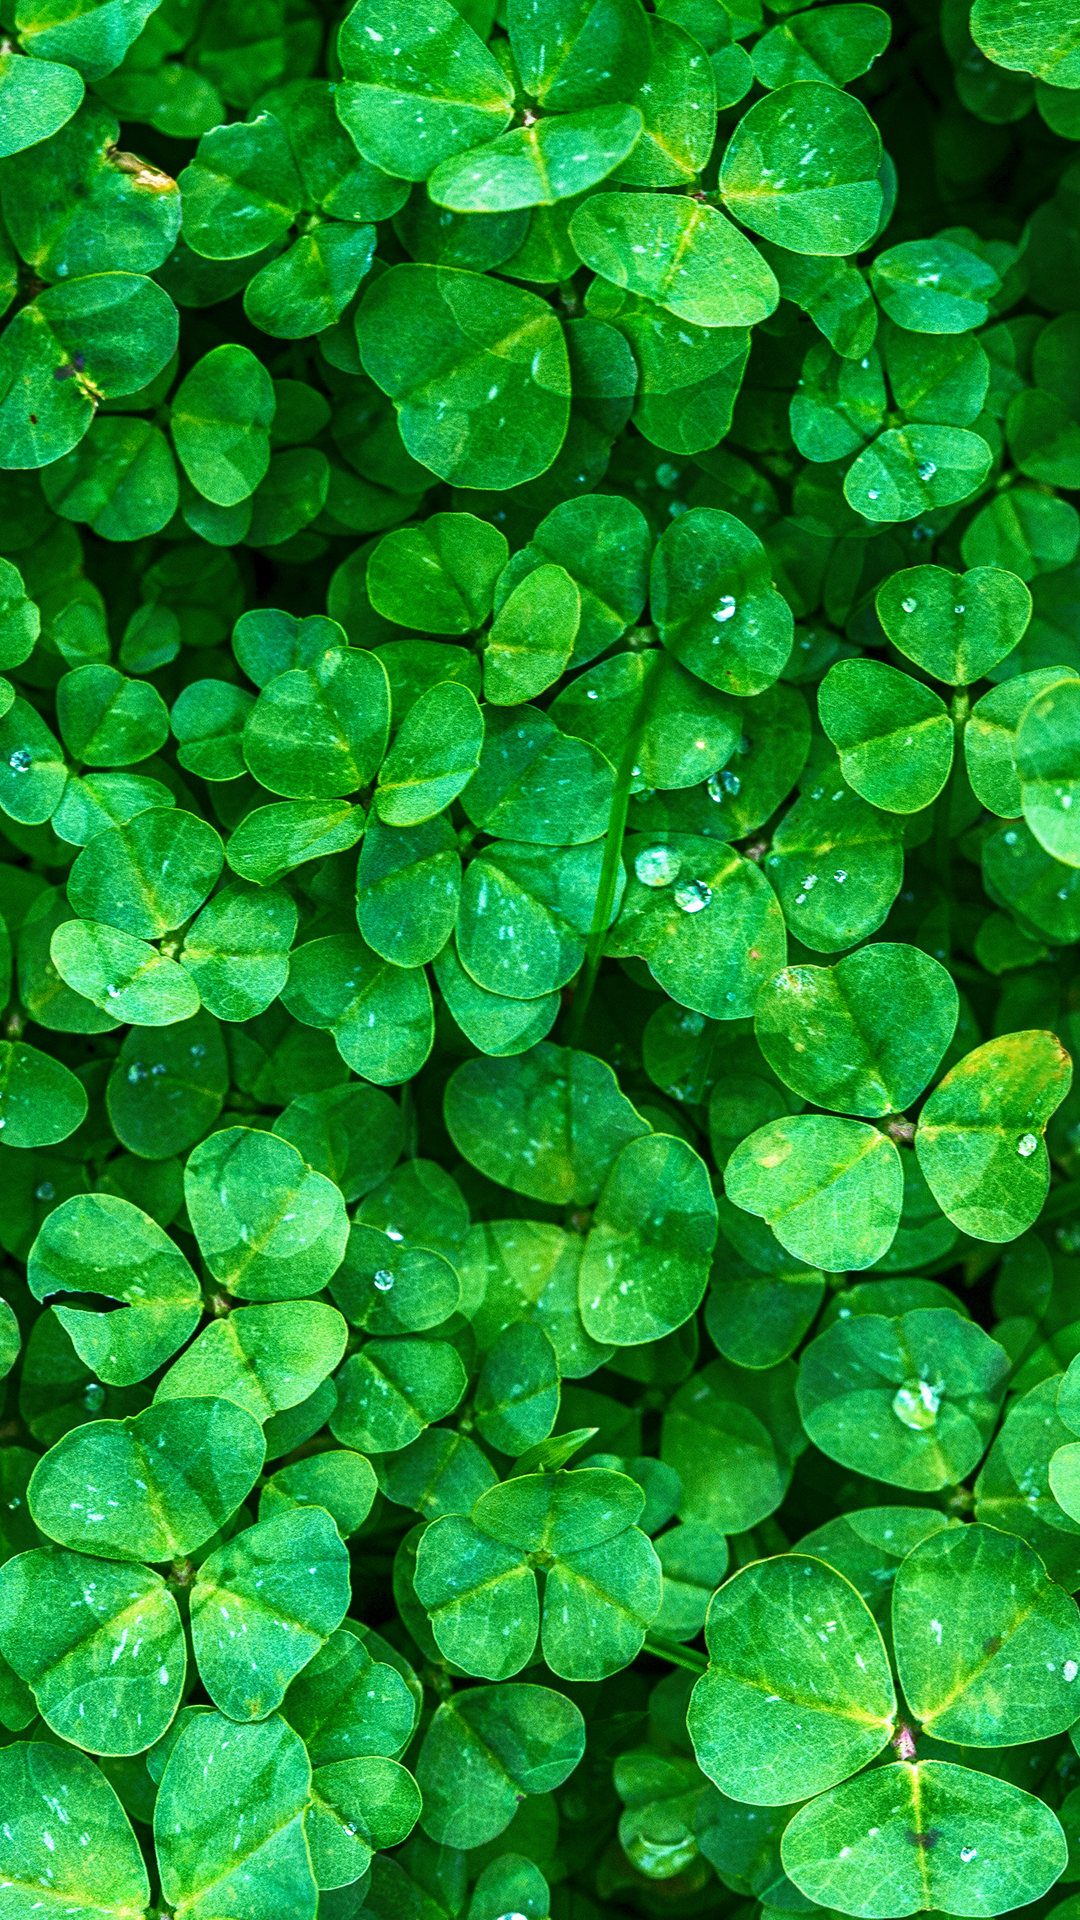 Clover Iphone Background